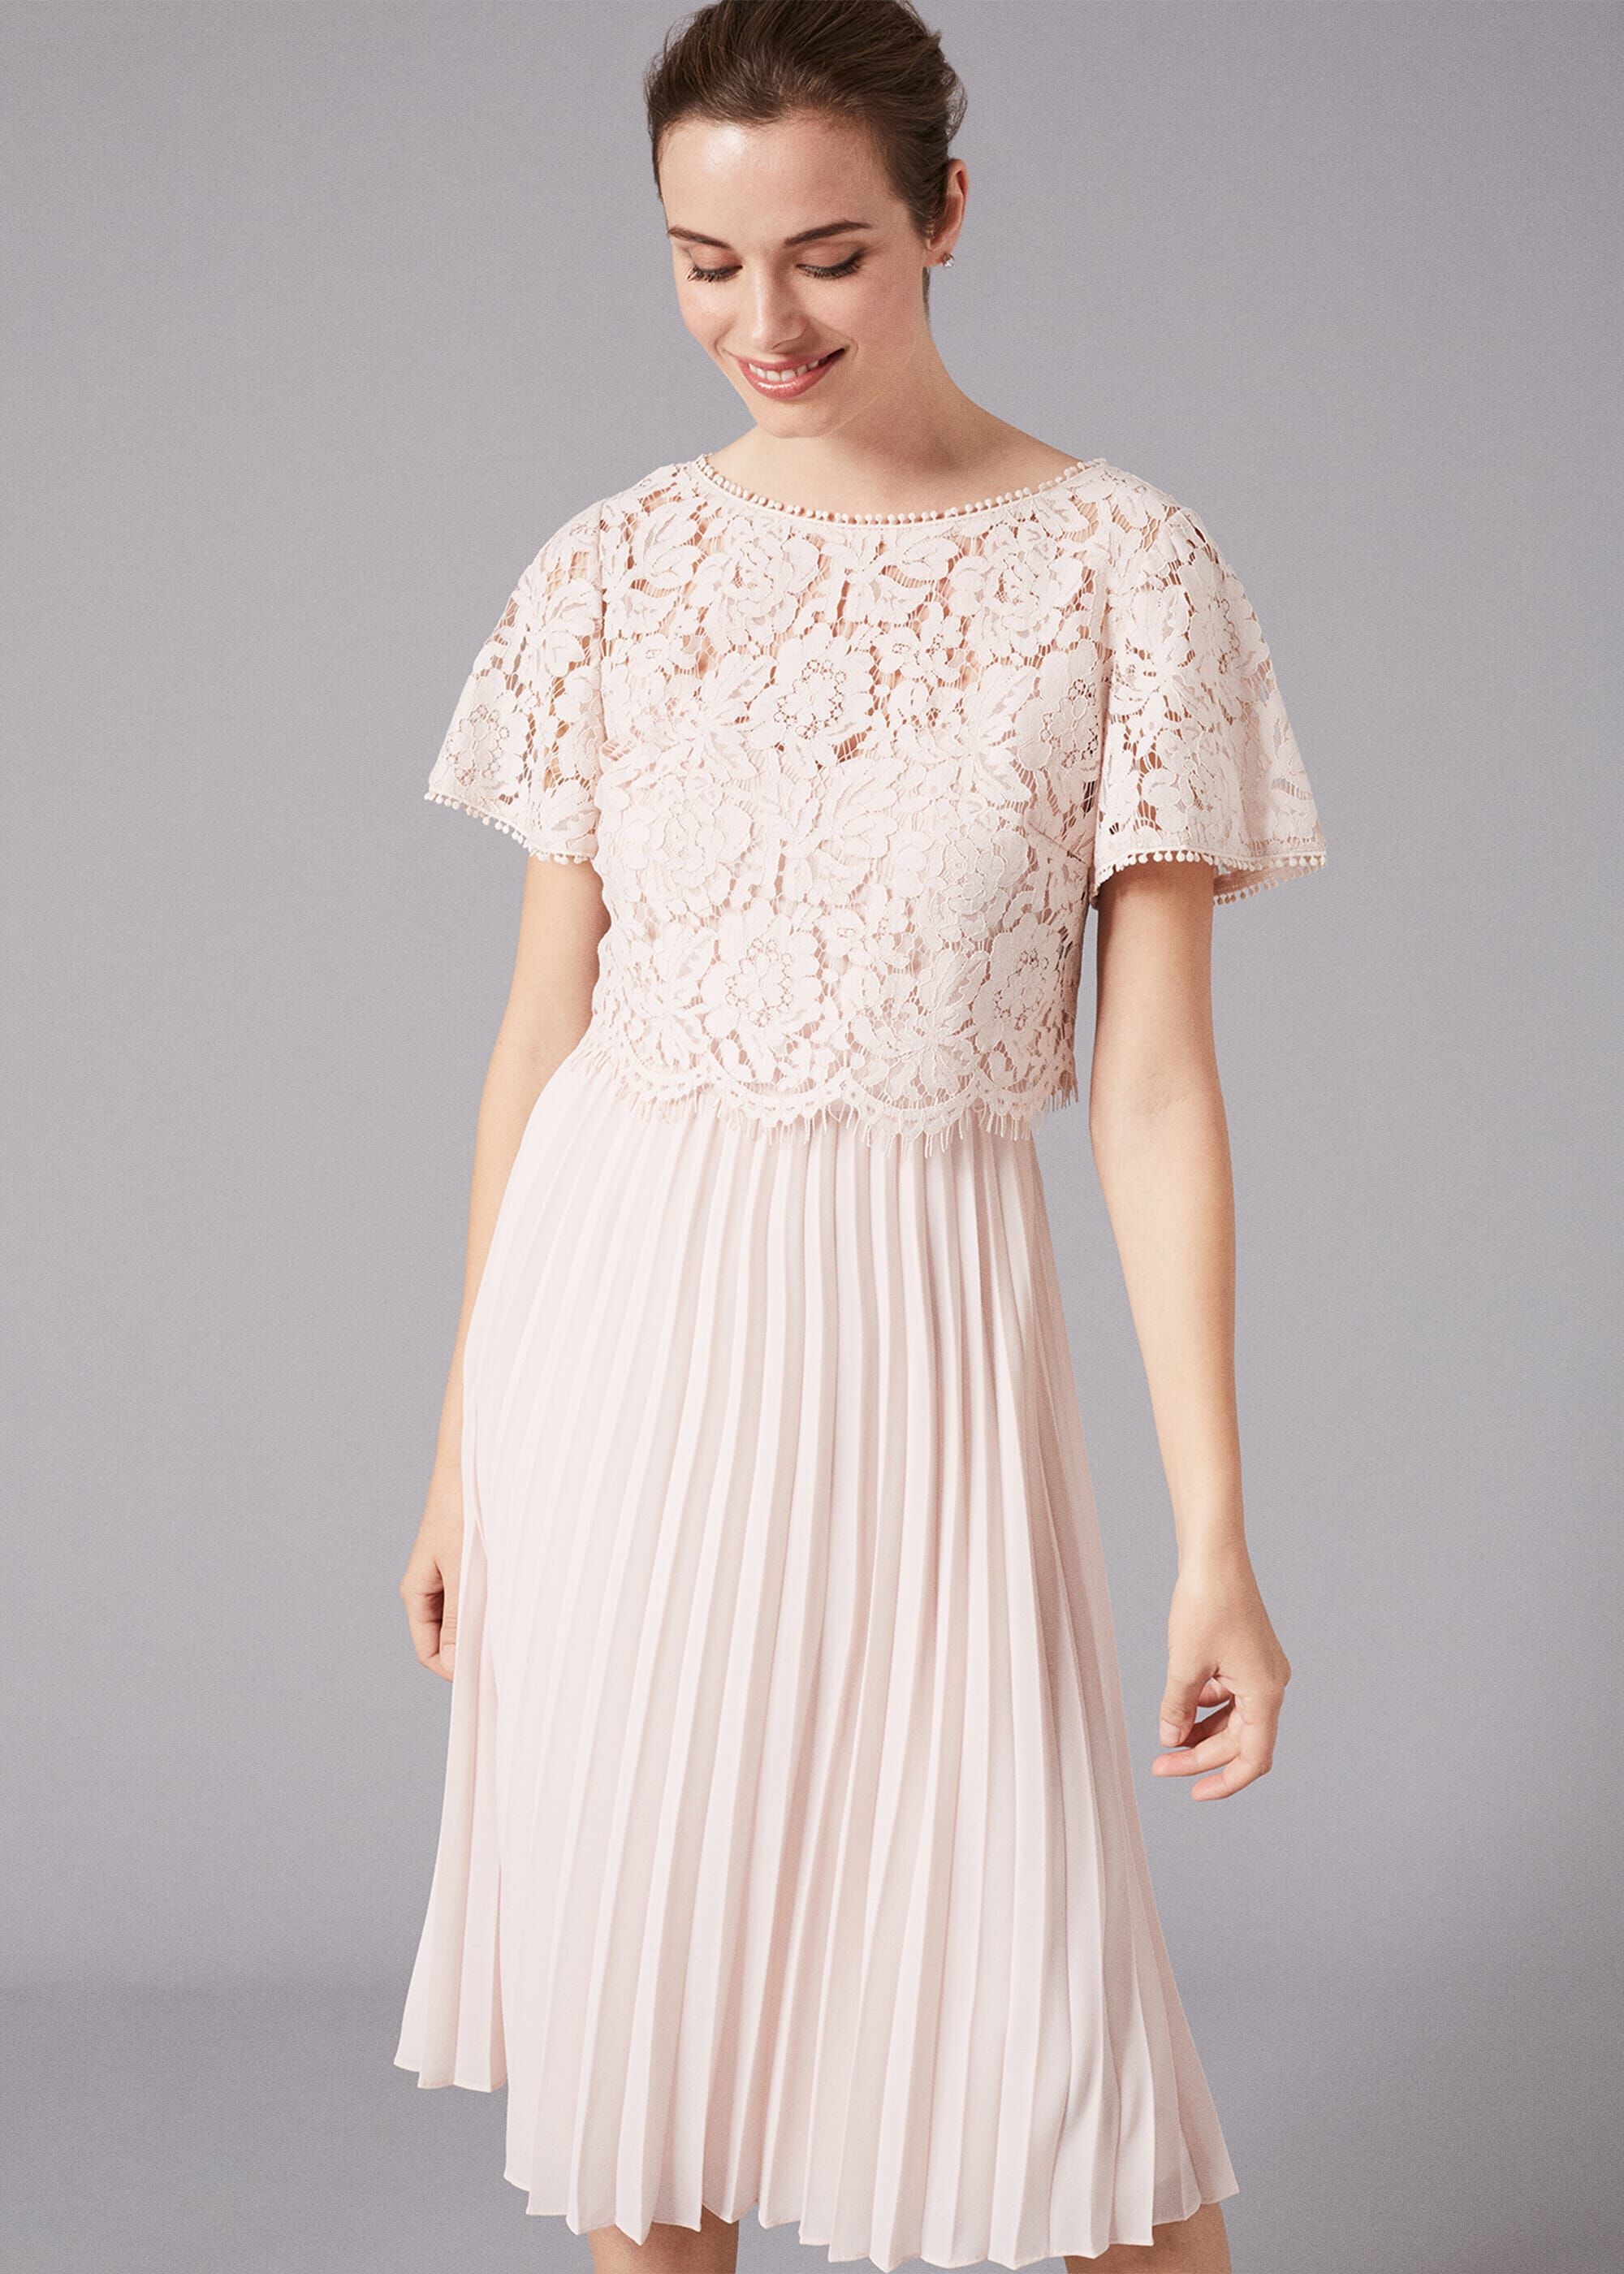 Phase Eight Bettina Lace Top Pleated Dress, Pink, Fit & Flare